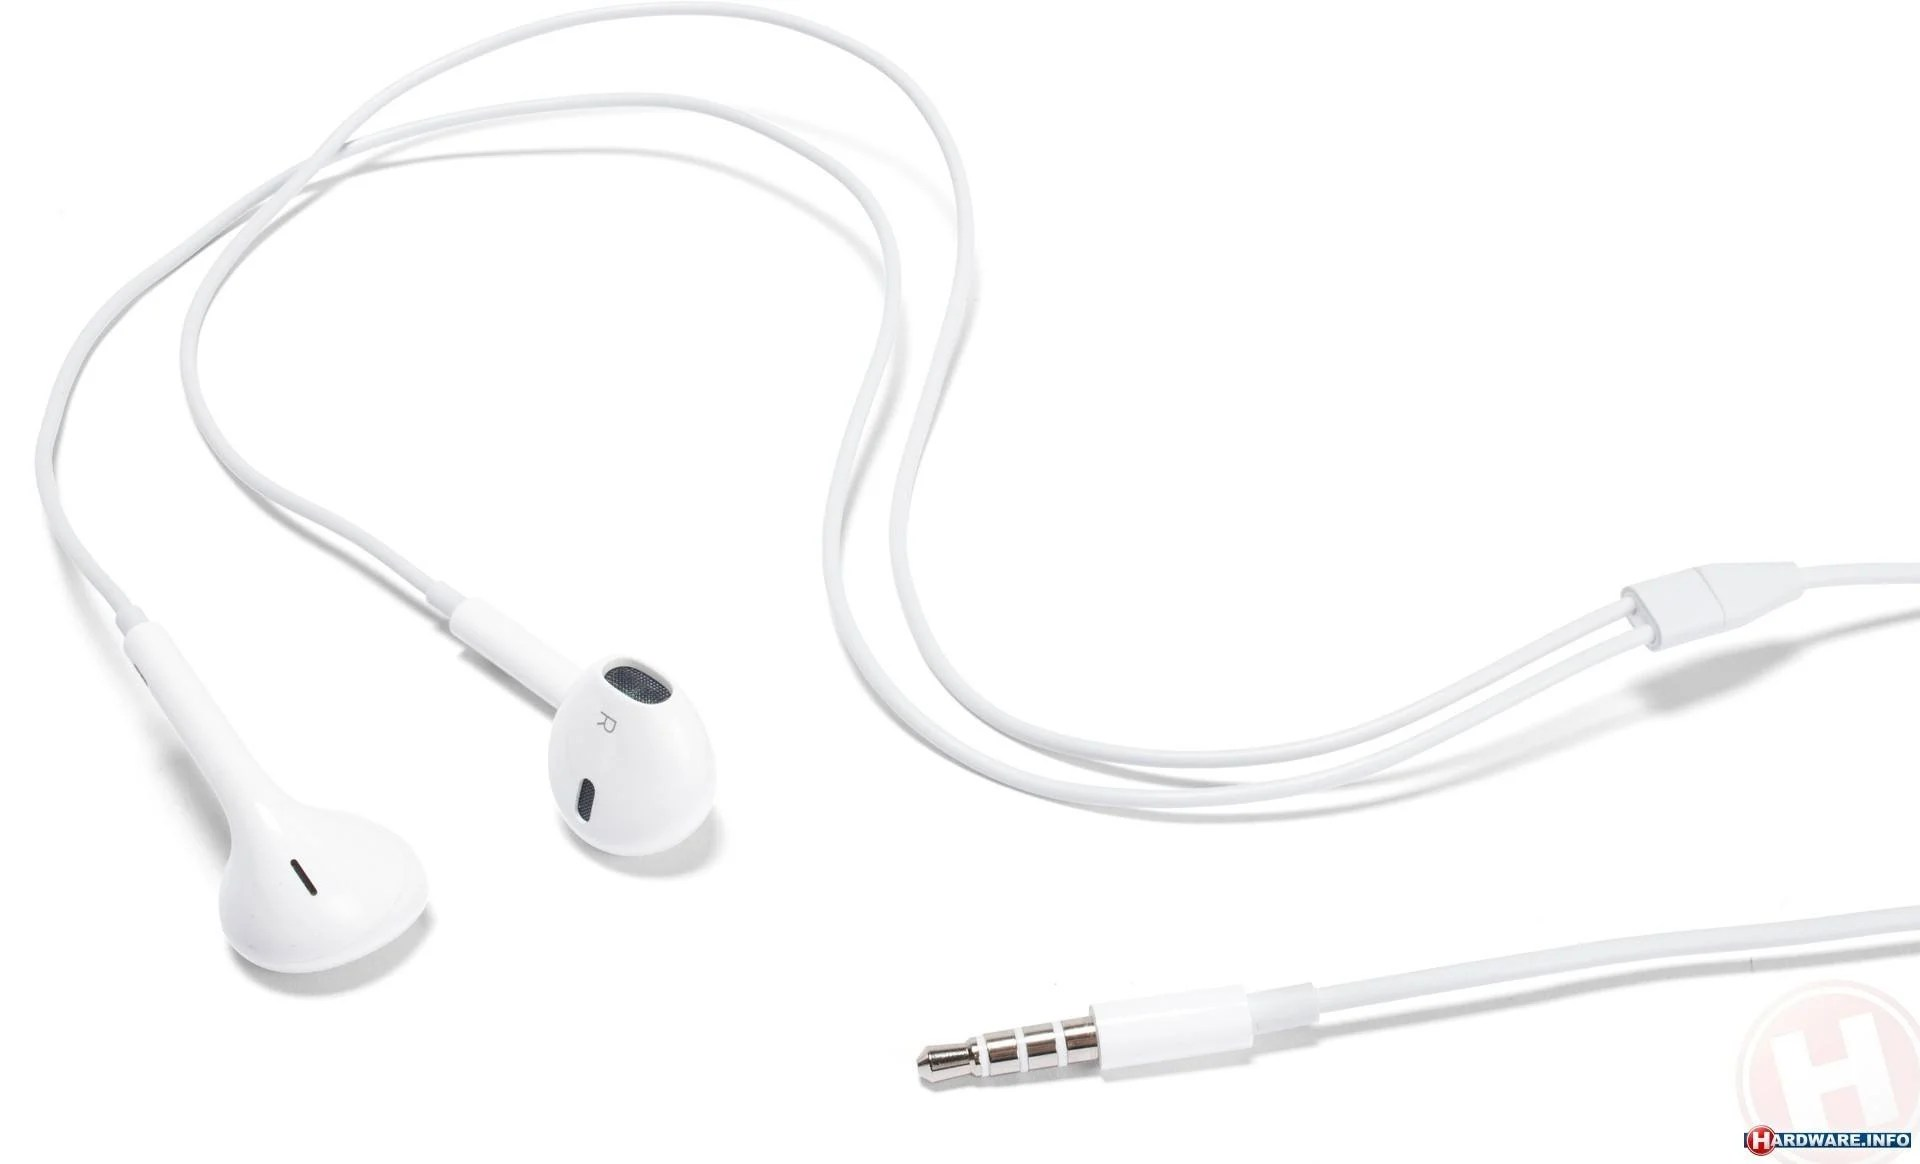 The 10 Best And 10 Worst Headphones You Need To Know